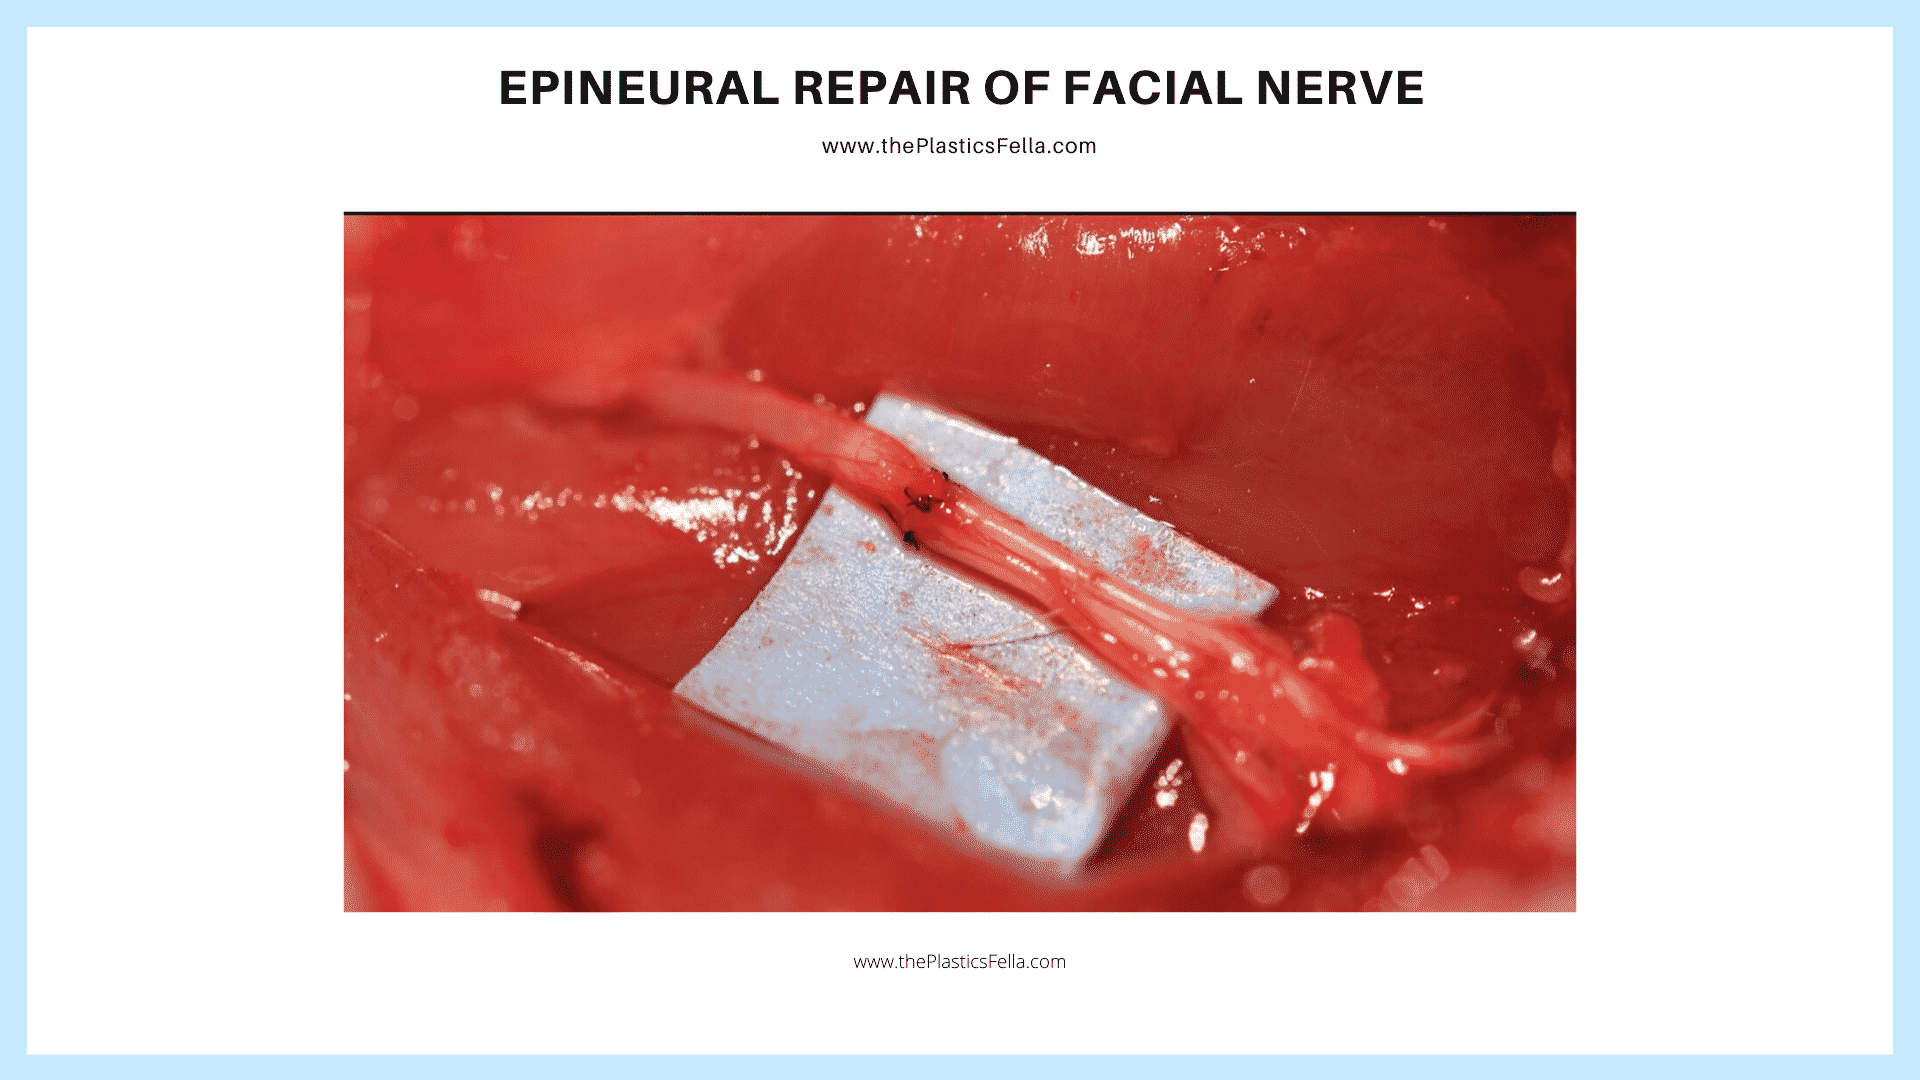 Epineural Repair in Treatment of Facial Nerve Palsy